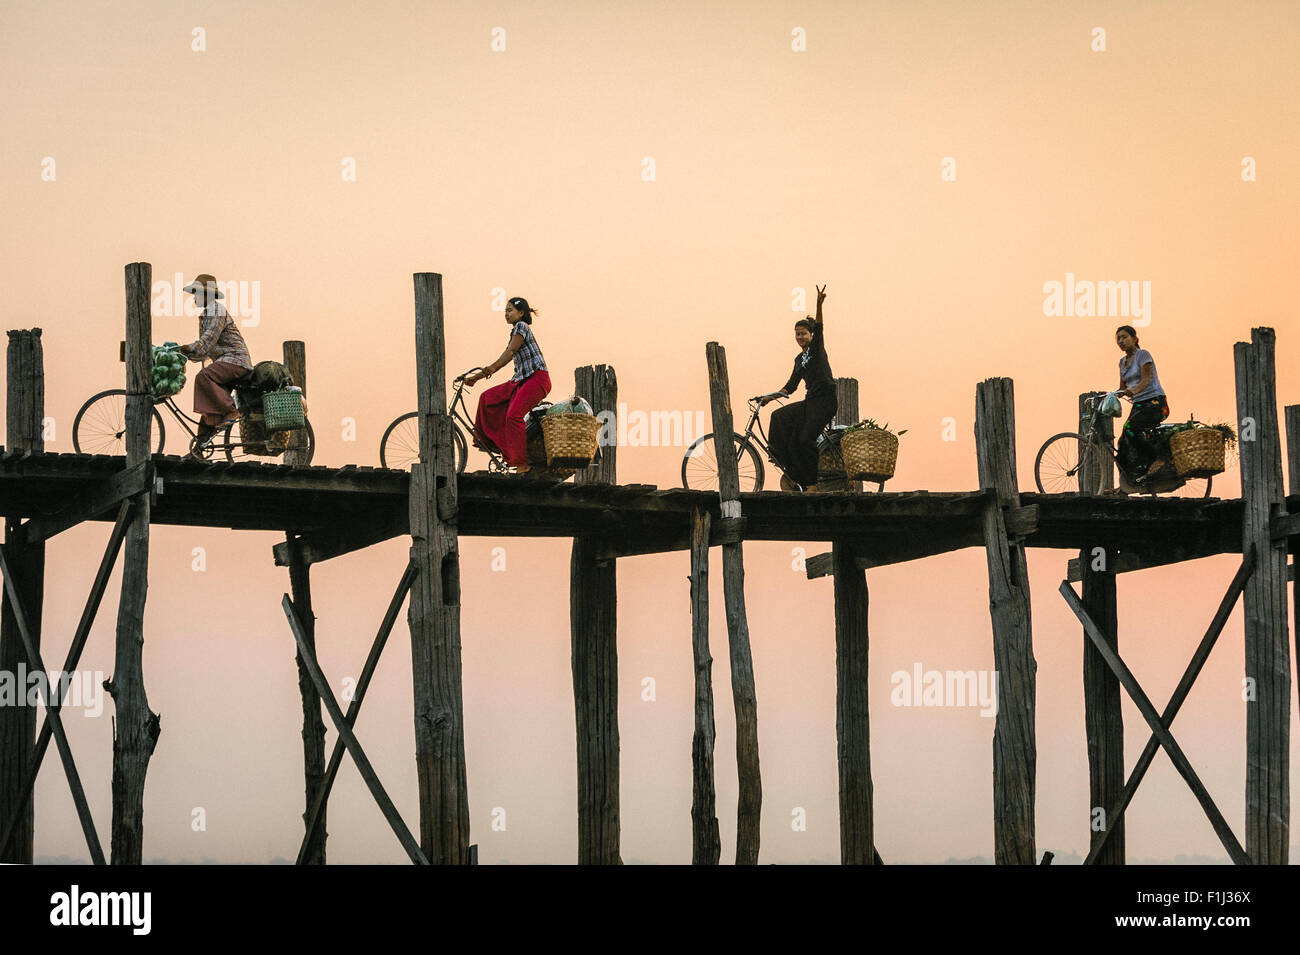 Burmese woman flashes peace sign on a bike riding over U Bein Bridge at sunset.  U Bein Bridge Burma, Myanmar - Stock Image